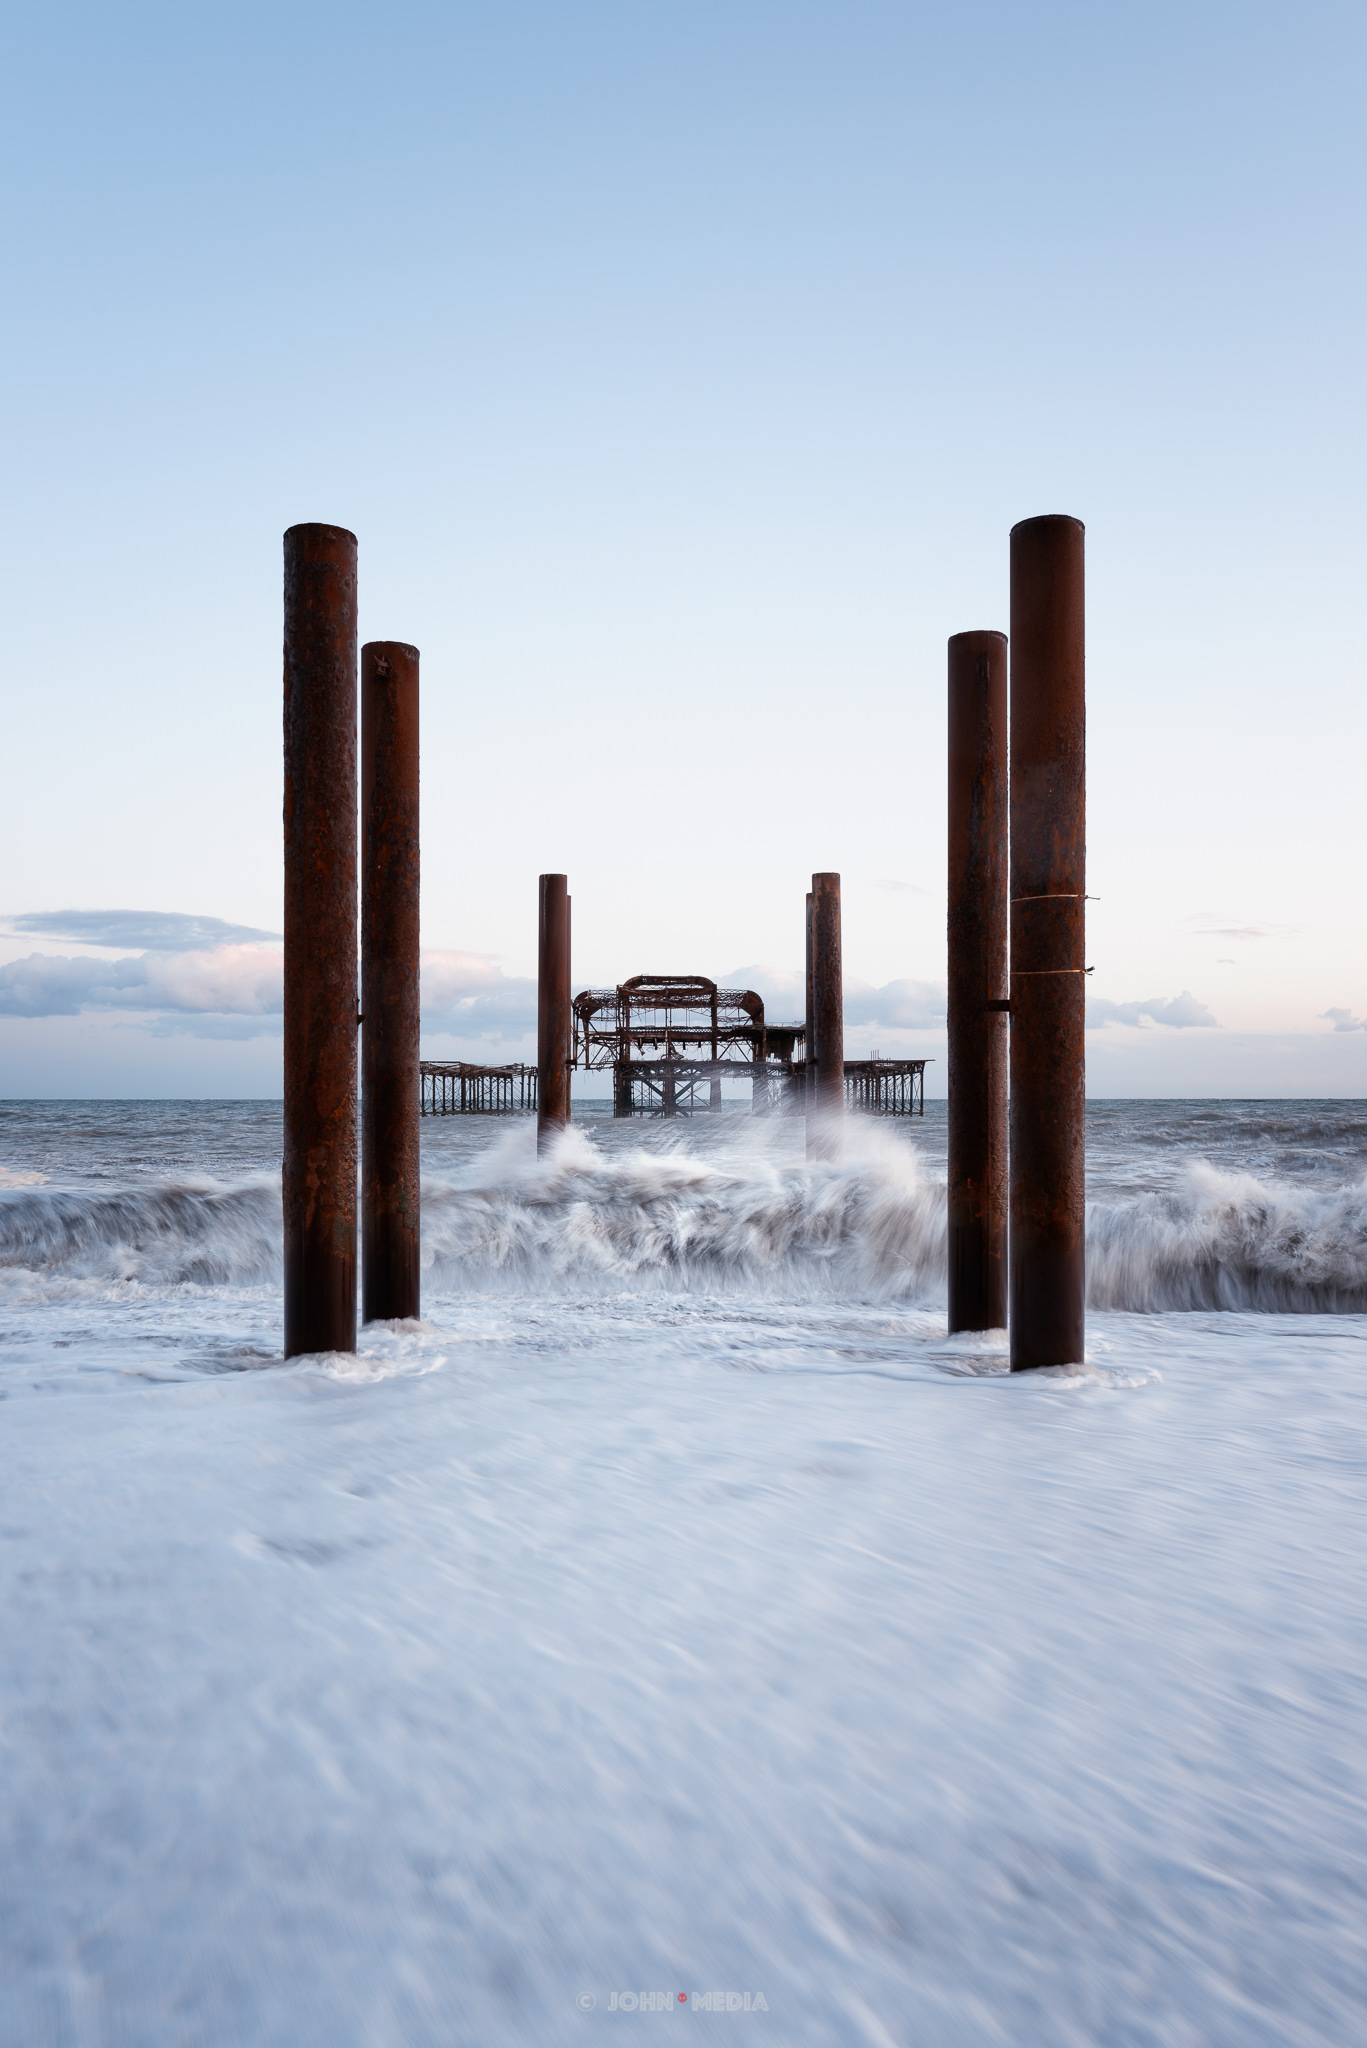 West pier breakers